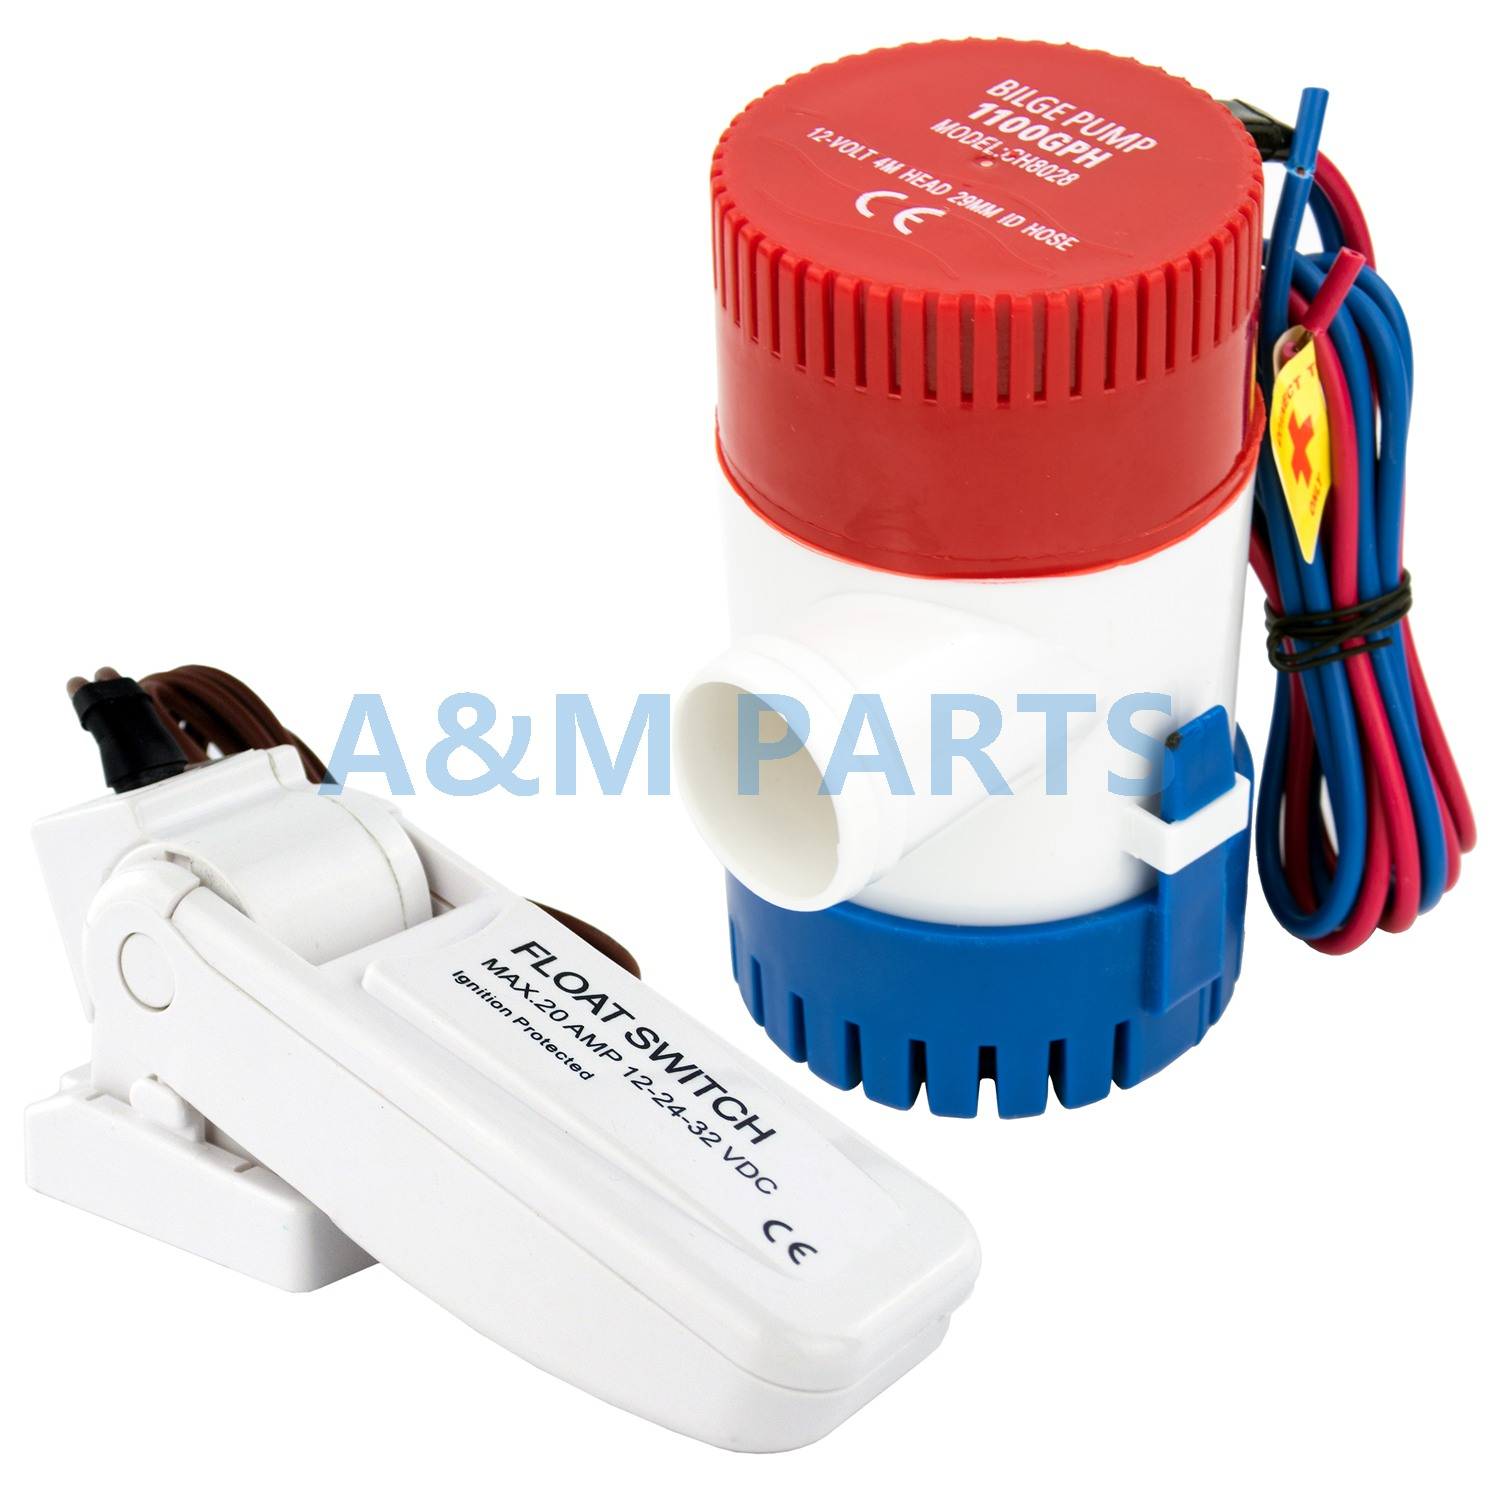 12V <font><b>1100</b></font> <font><b>GPH</b></font> Boat <font><b>Bilge</b></font> <font><b>Pump</b></font> Marine Submersible Water <font><b>Pump</b></font> With Float Switch image